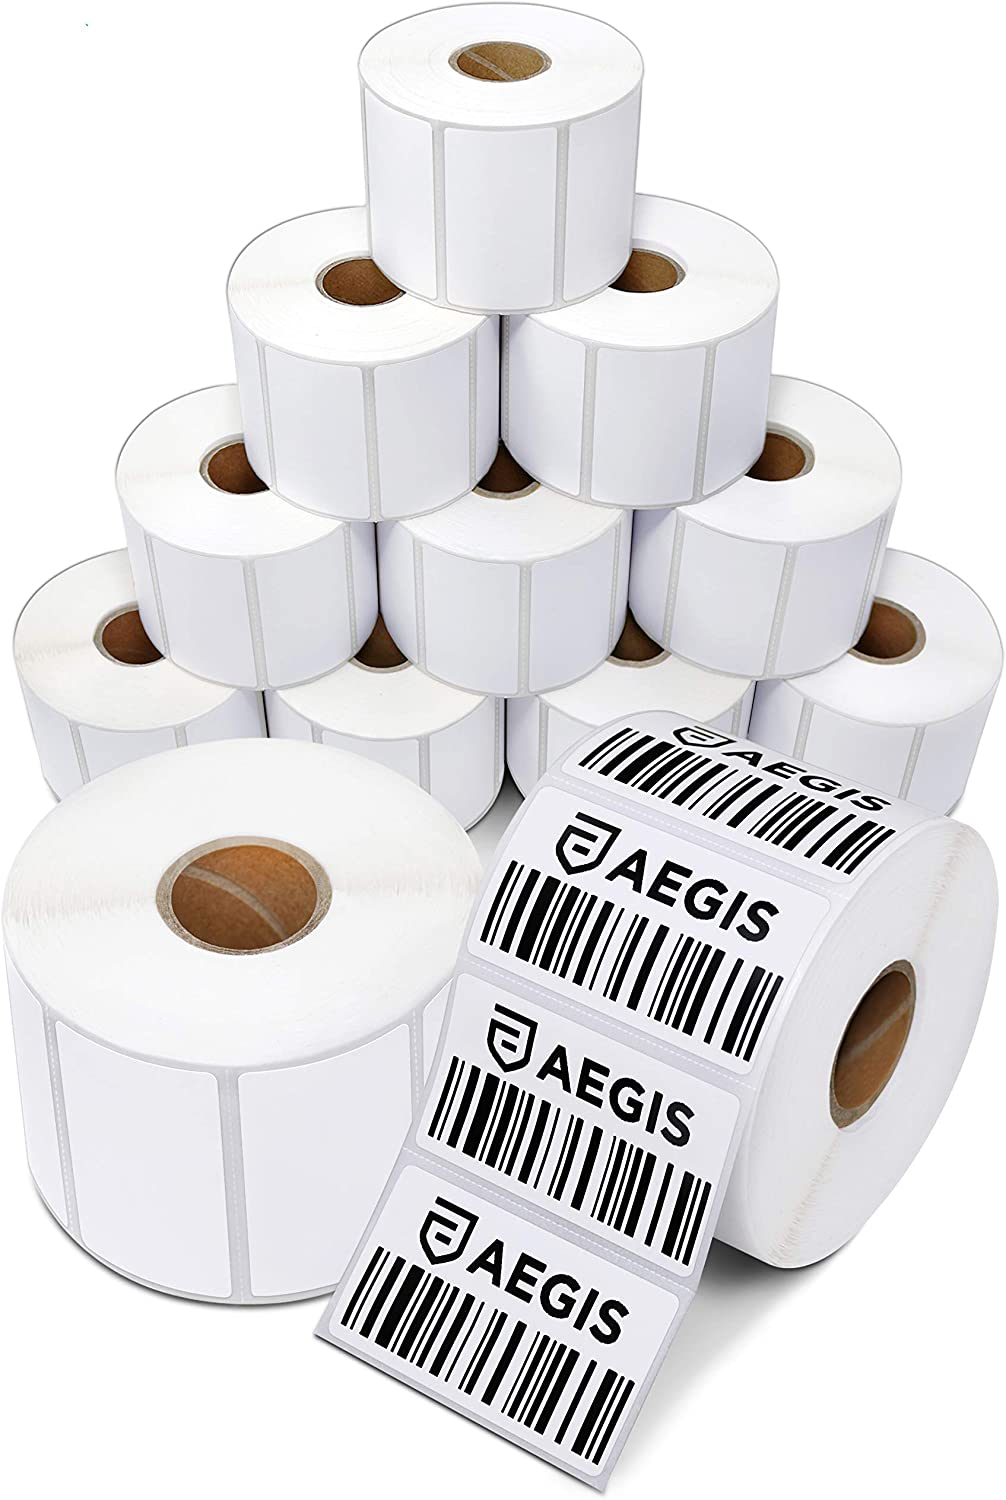 24 Rolls Perforated 2.25x1.25 Thermal Shipping Labels for Zebra LP2844 1000//roll